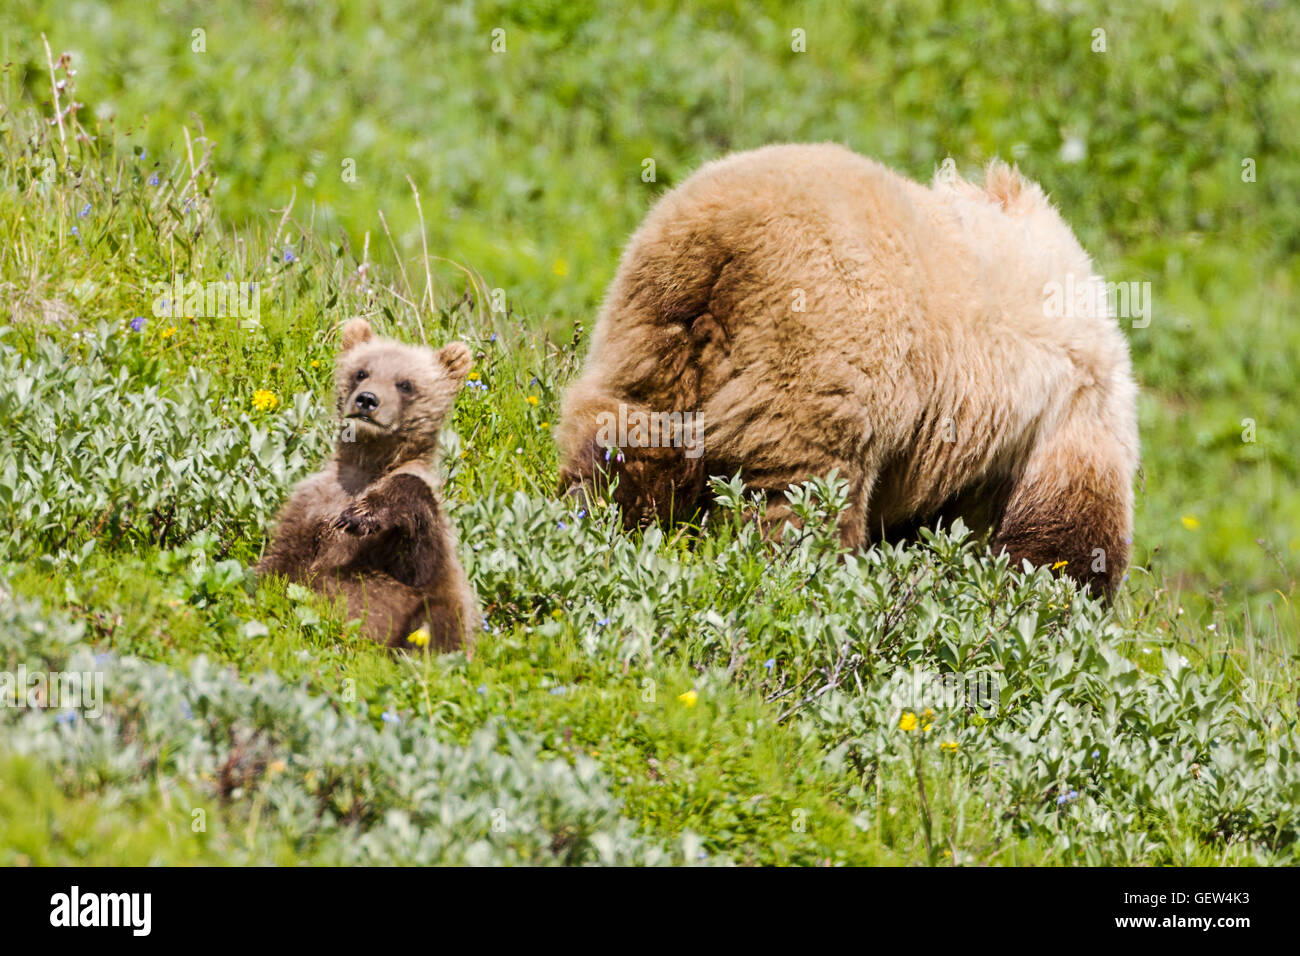 Sow (female) Grizzly bear (Ursus arctos horribilis) with cubs, near Highway Pass, Denali National Park, Alaska, Stock Photo